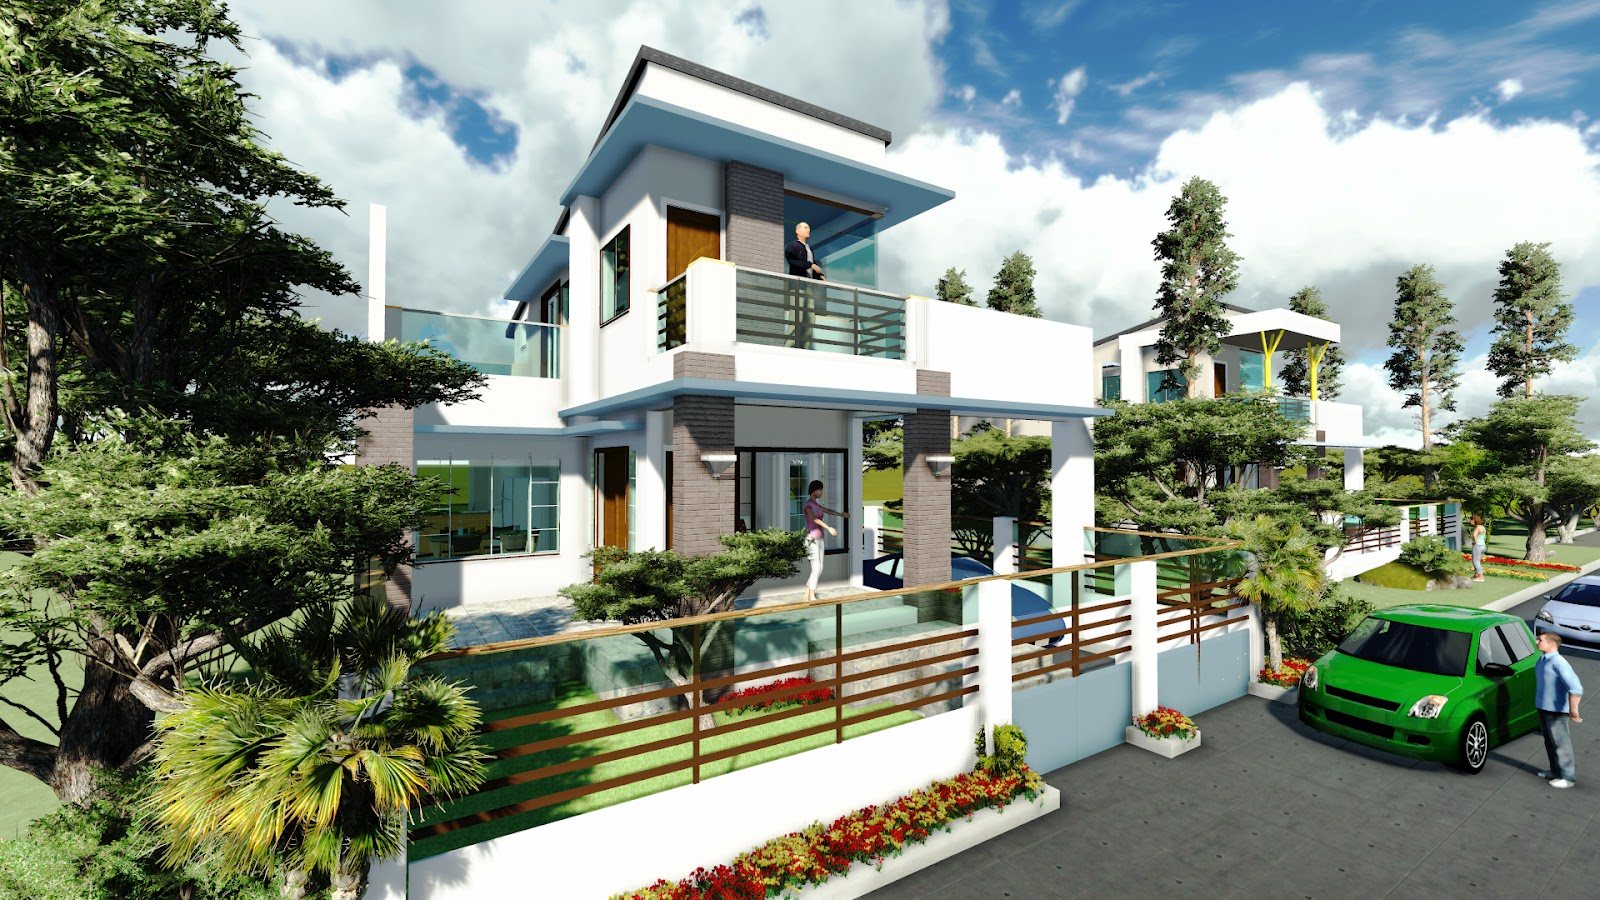 House designs philippines architect home design and for Architecture house design philippines